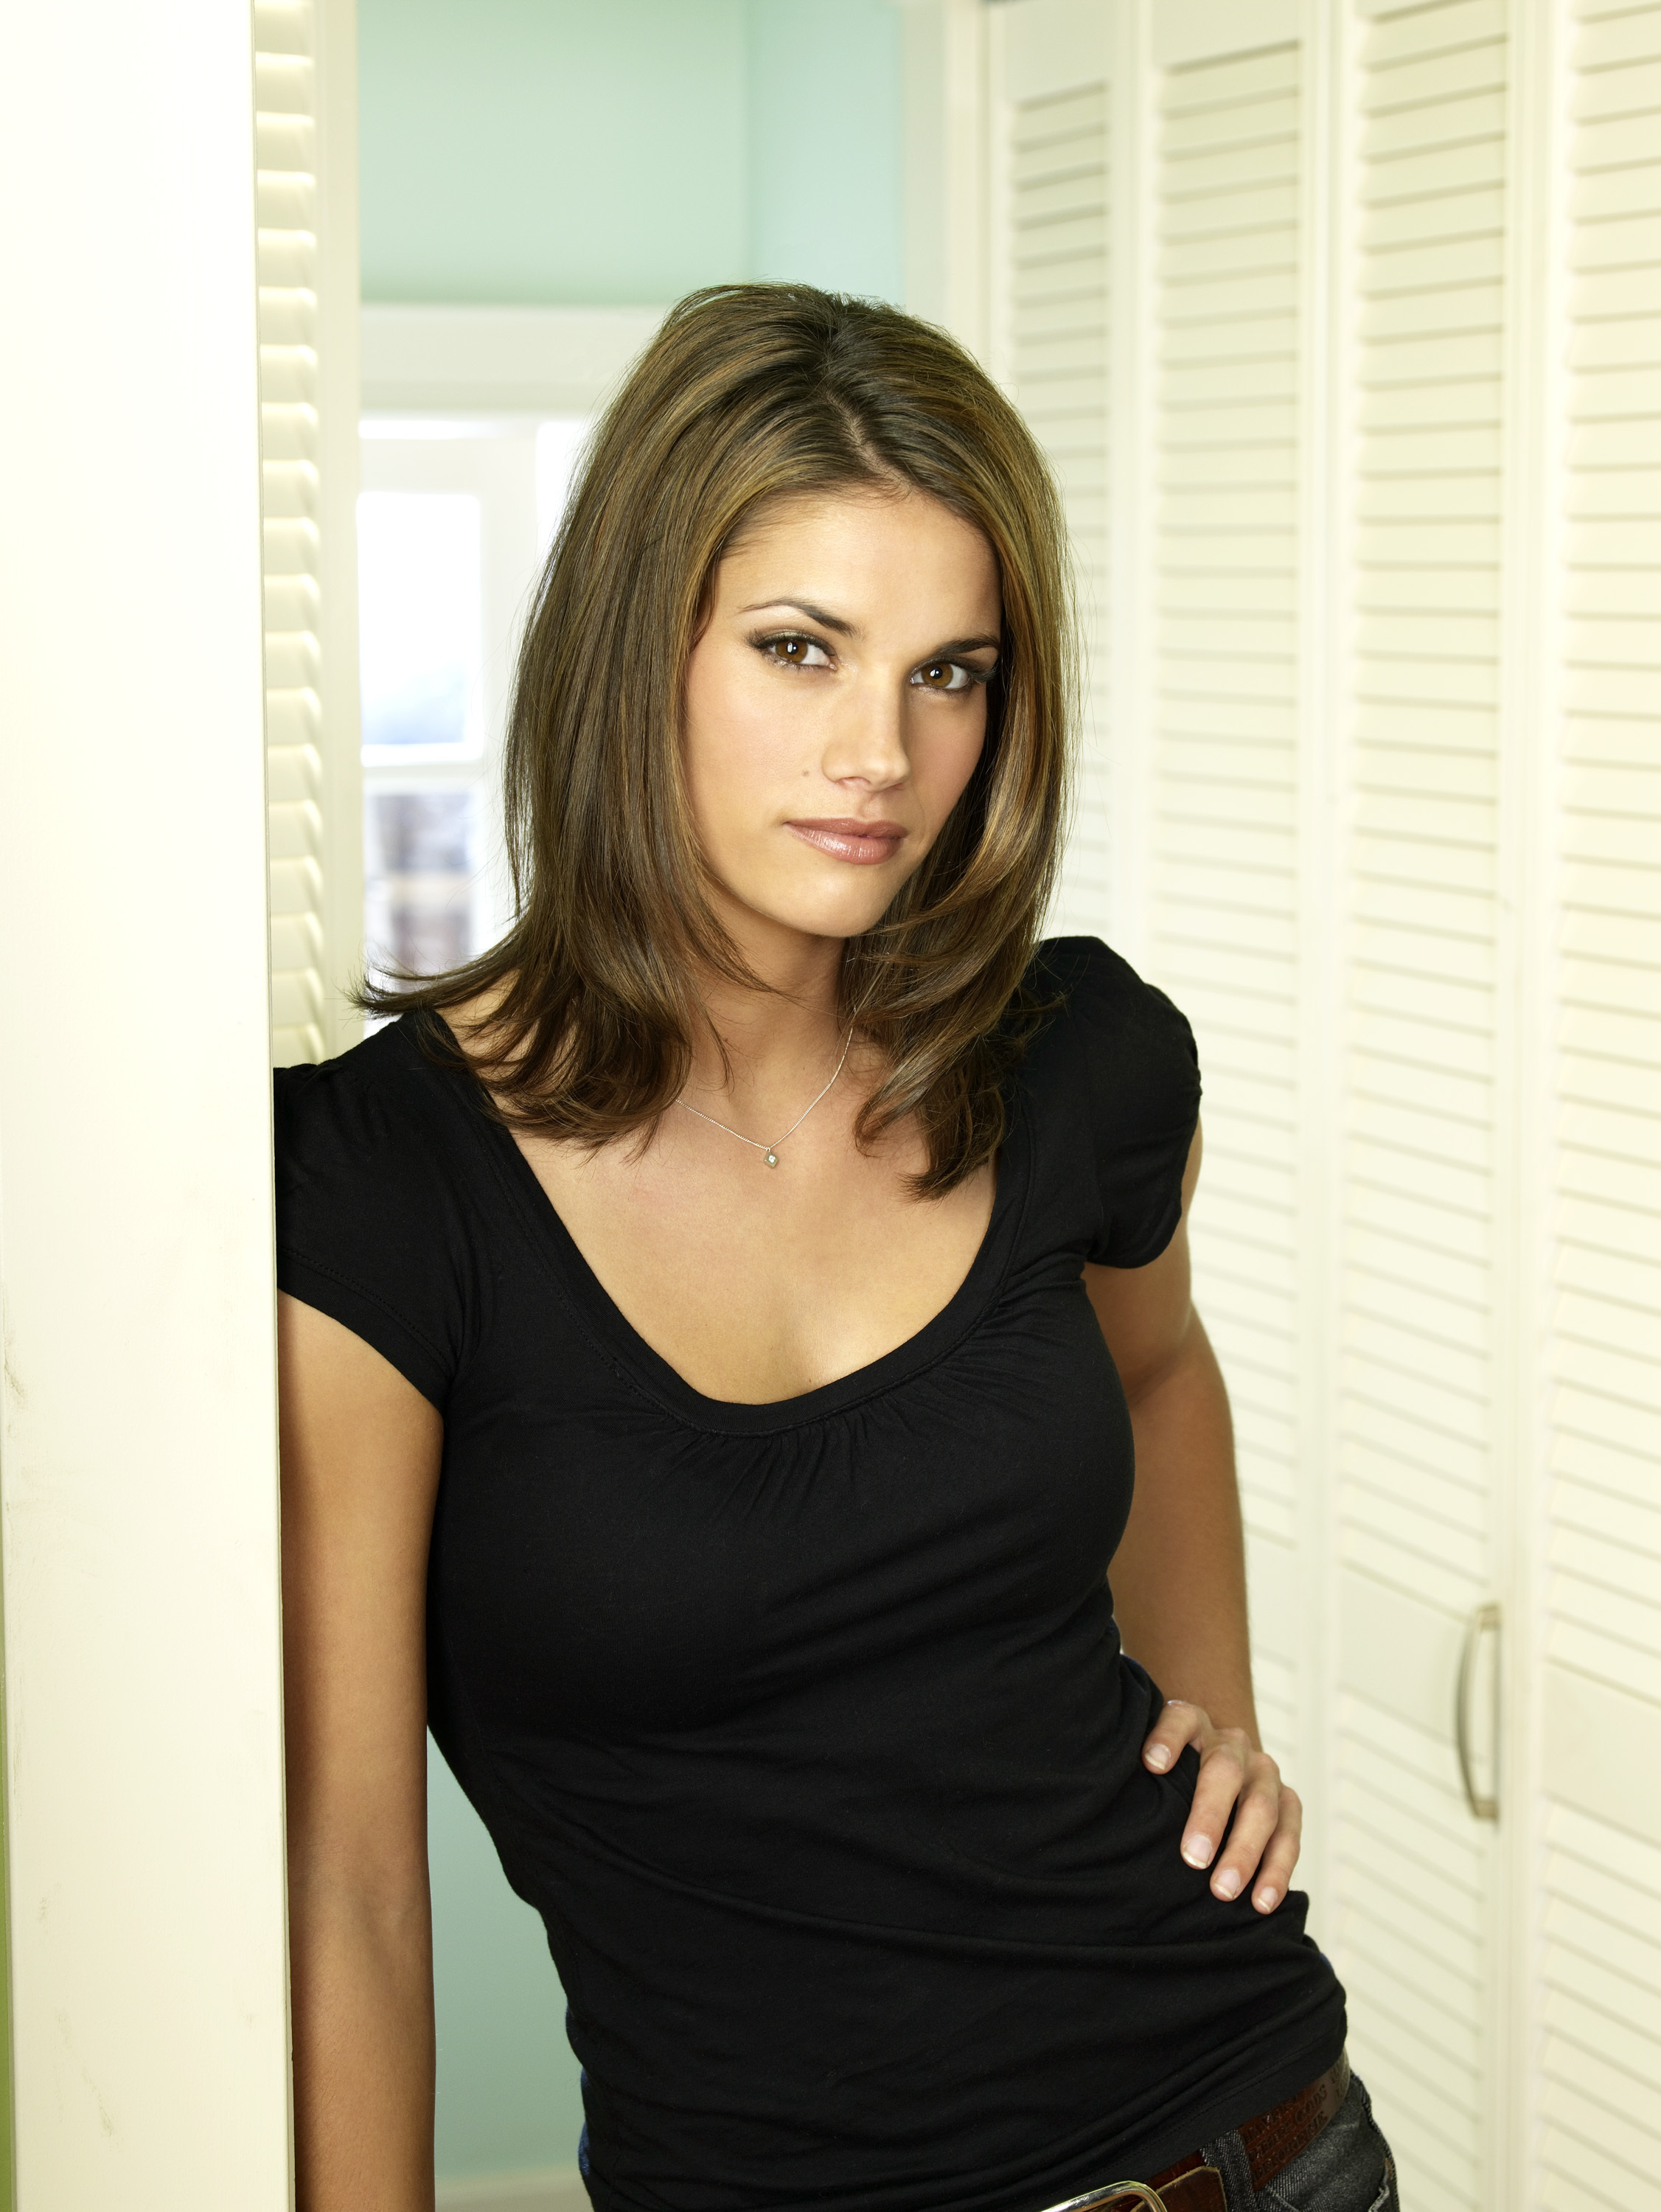 Missy Peregrym - Beautiful HD Wallpapers